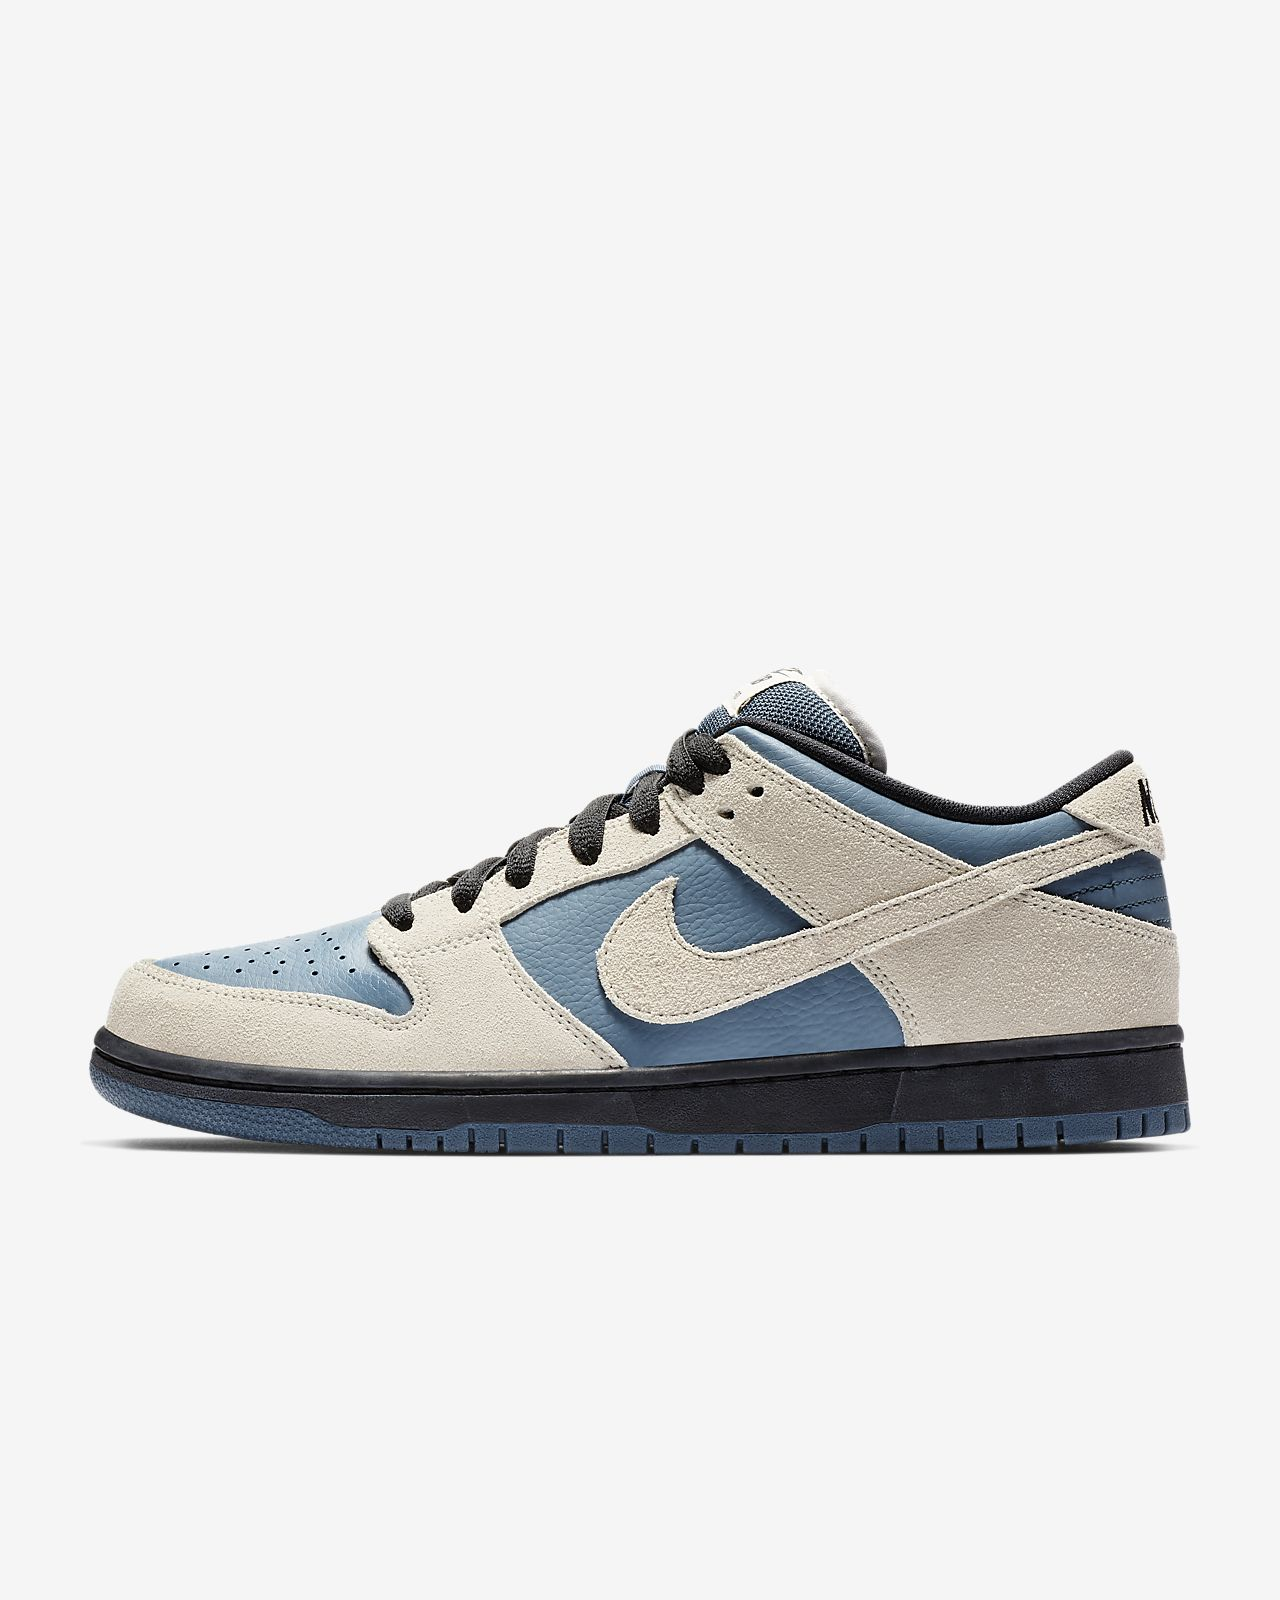 eec56cd131ed Nike SB Dunk Low Pro Skate Shoe. Nike.com GB